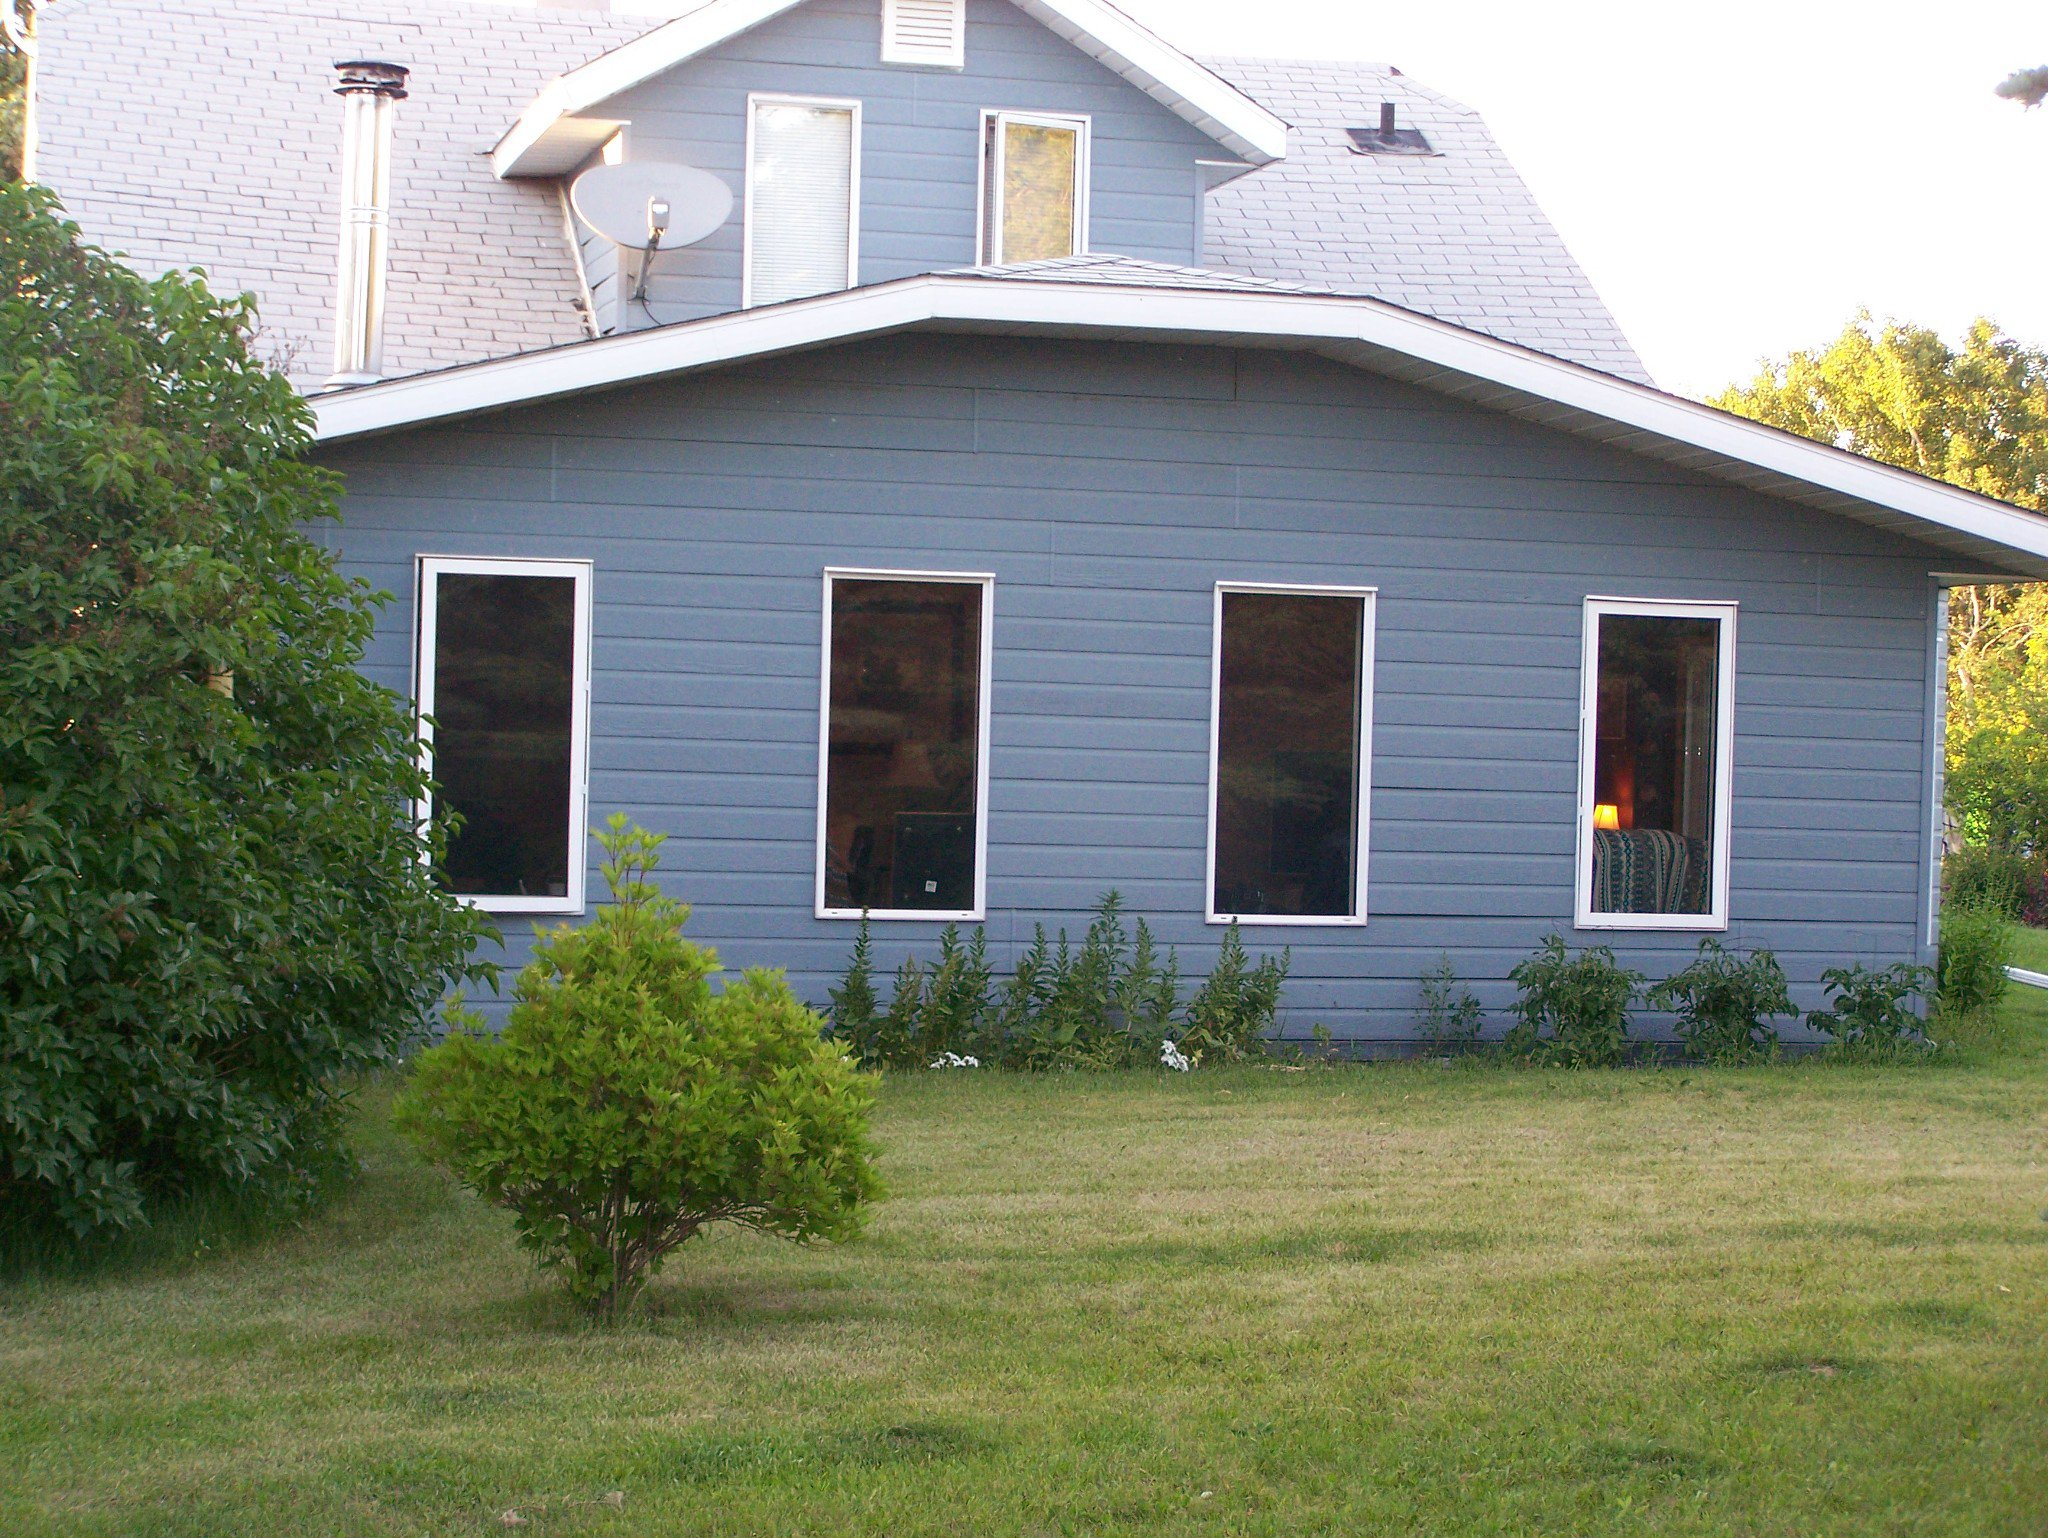 Main Photo:  in Sandwith: Acreage for sale (Round Hill Rm No. 467)